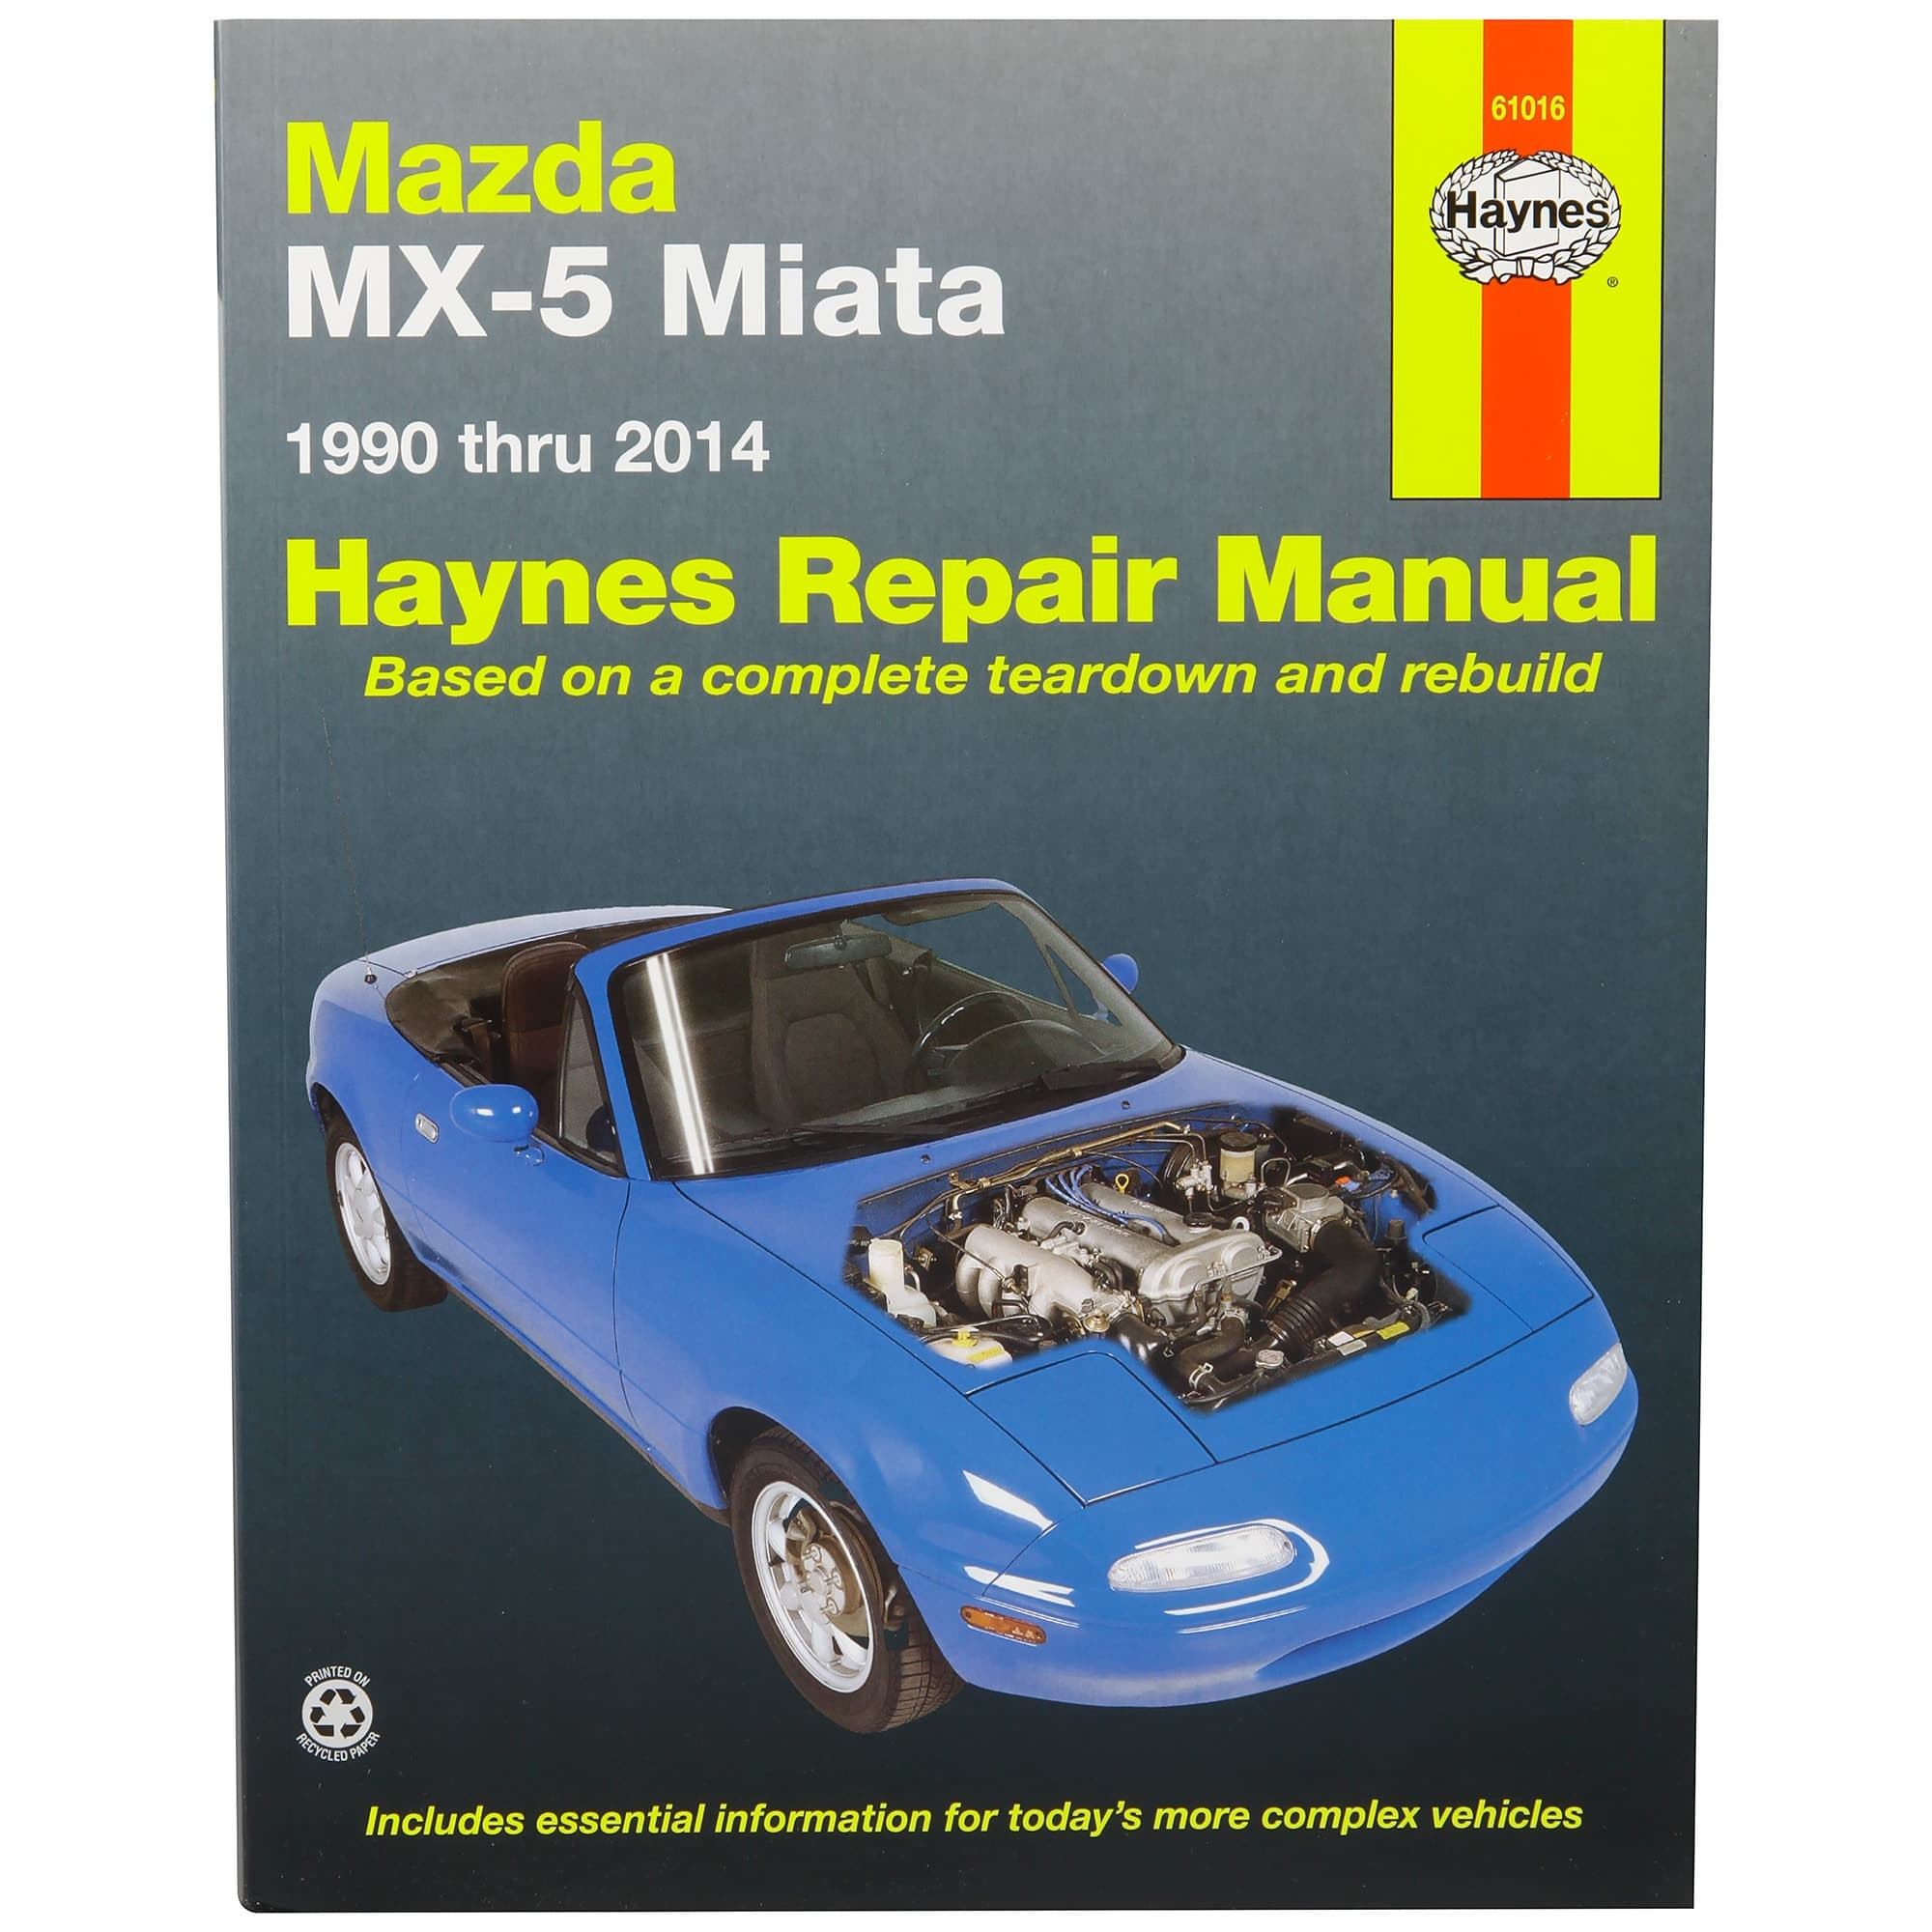 211 571 book haynes repair manual mossmiata rh mossmiata com mazda mx5 na workshop manual mazda mx5 na workshop manual